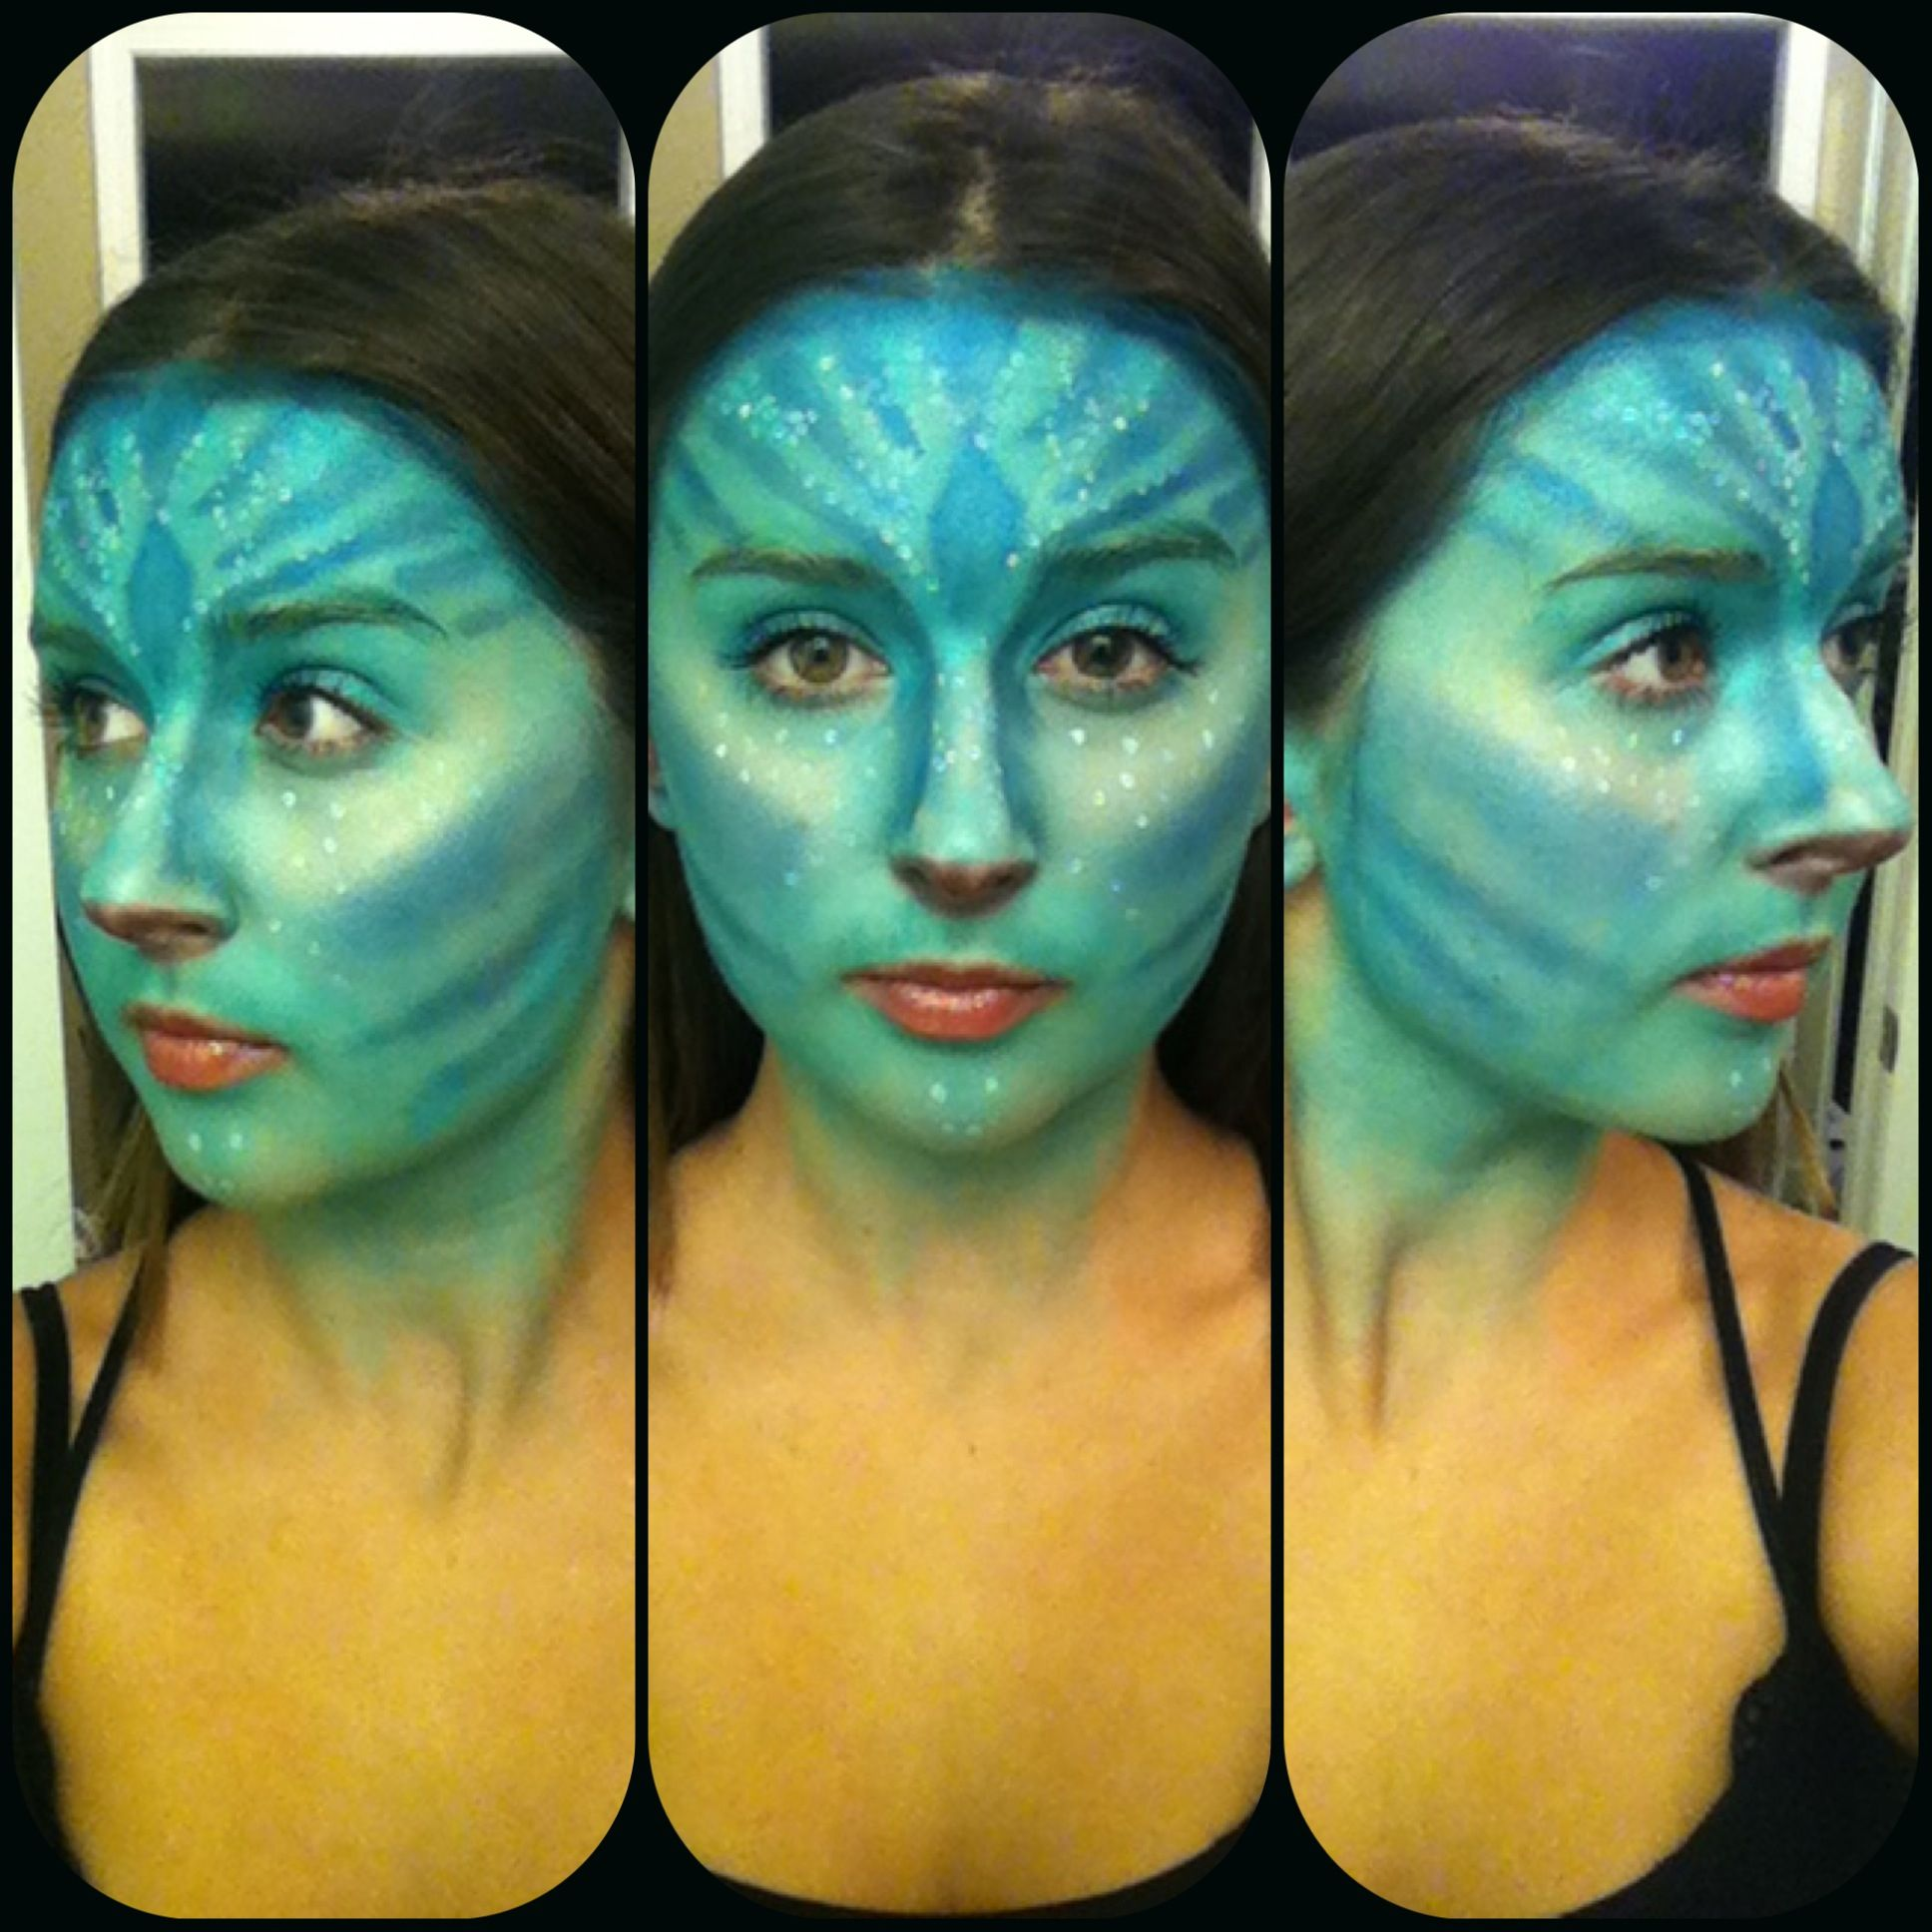 Some special fx I did tonight. #avatar #sfxmakeup #specialfx #makeup #makeupartist